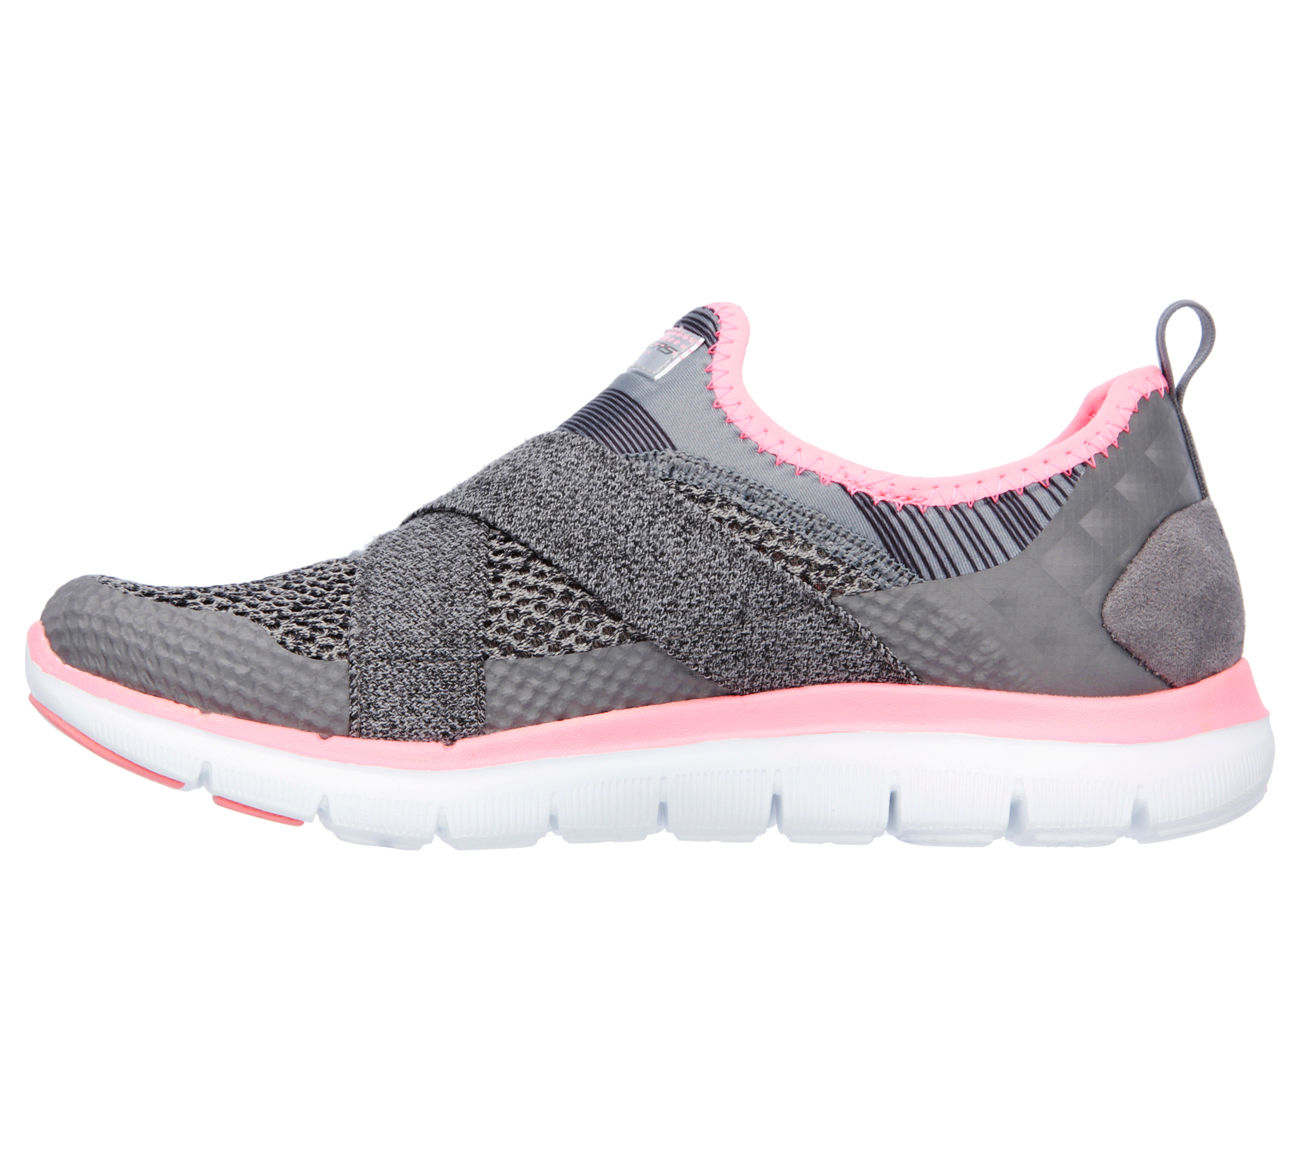 Skechers 12752 Cccl Women S Flex Appeal 2 0 New Image